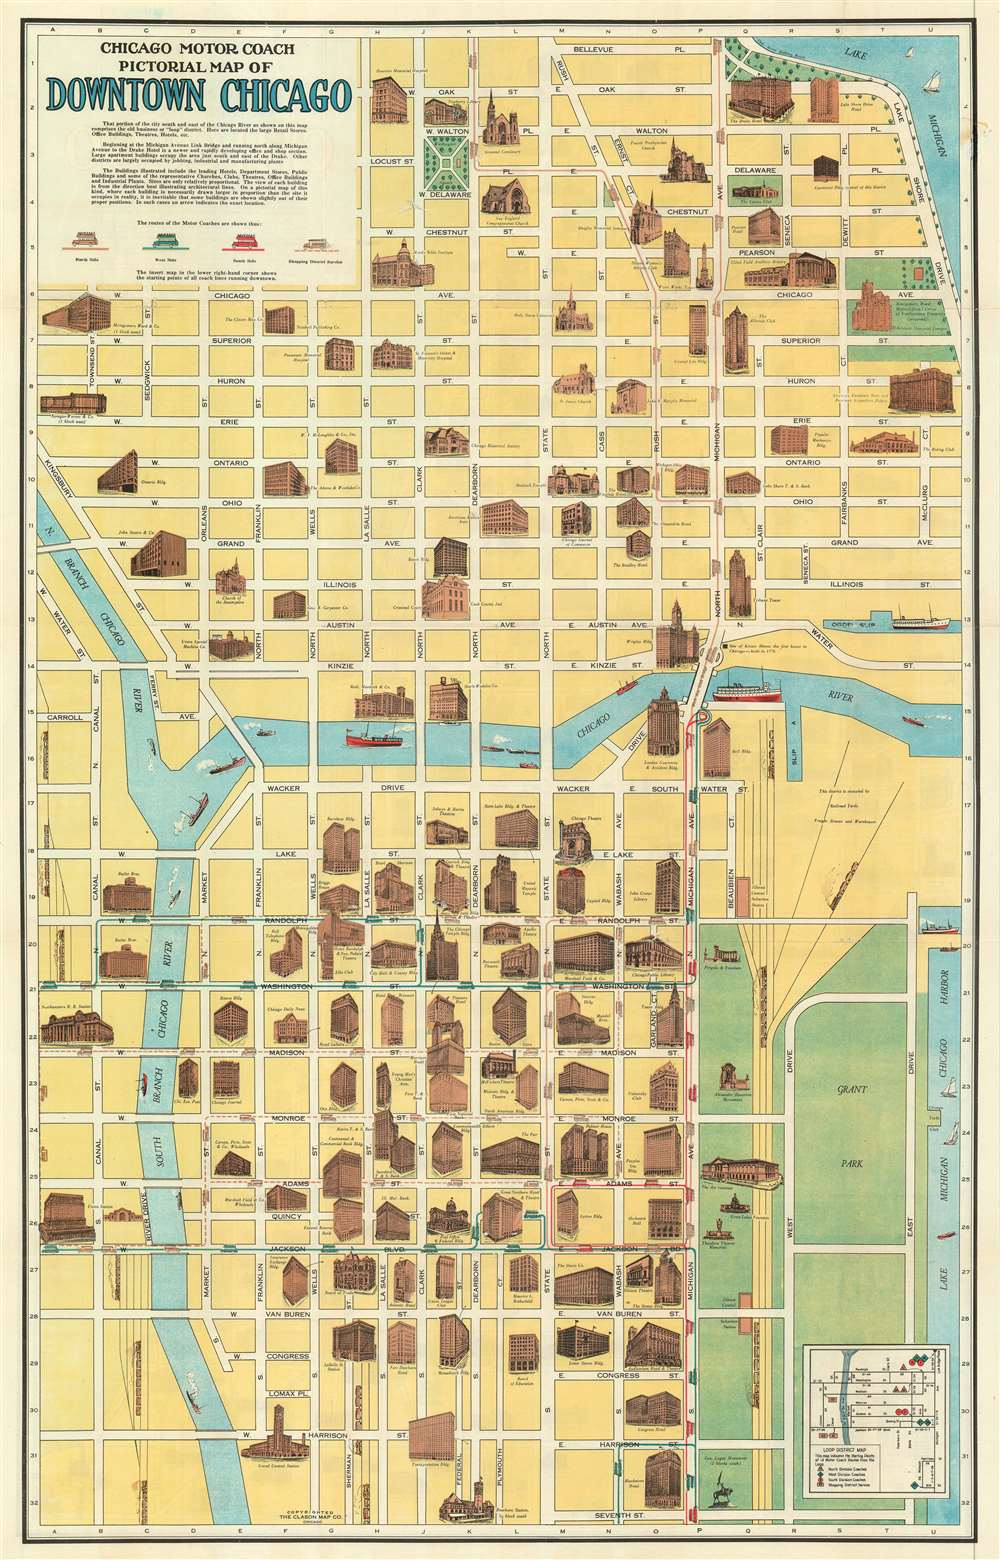 Chicago Motor Coach Pictorial Map of Downtown Chicago.